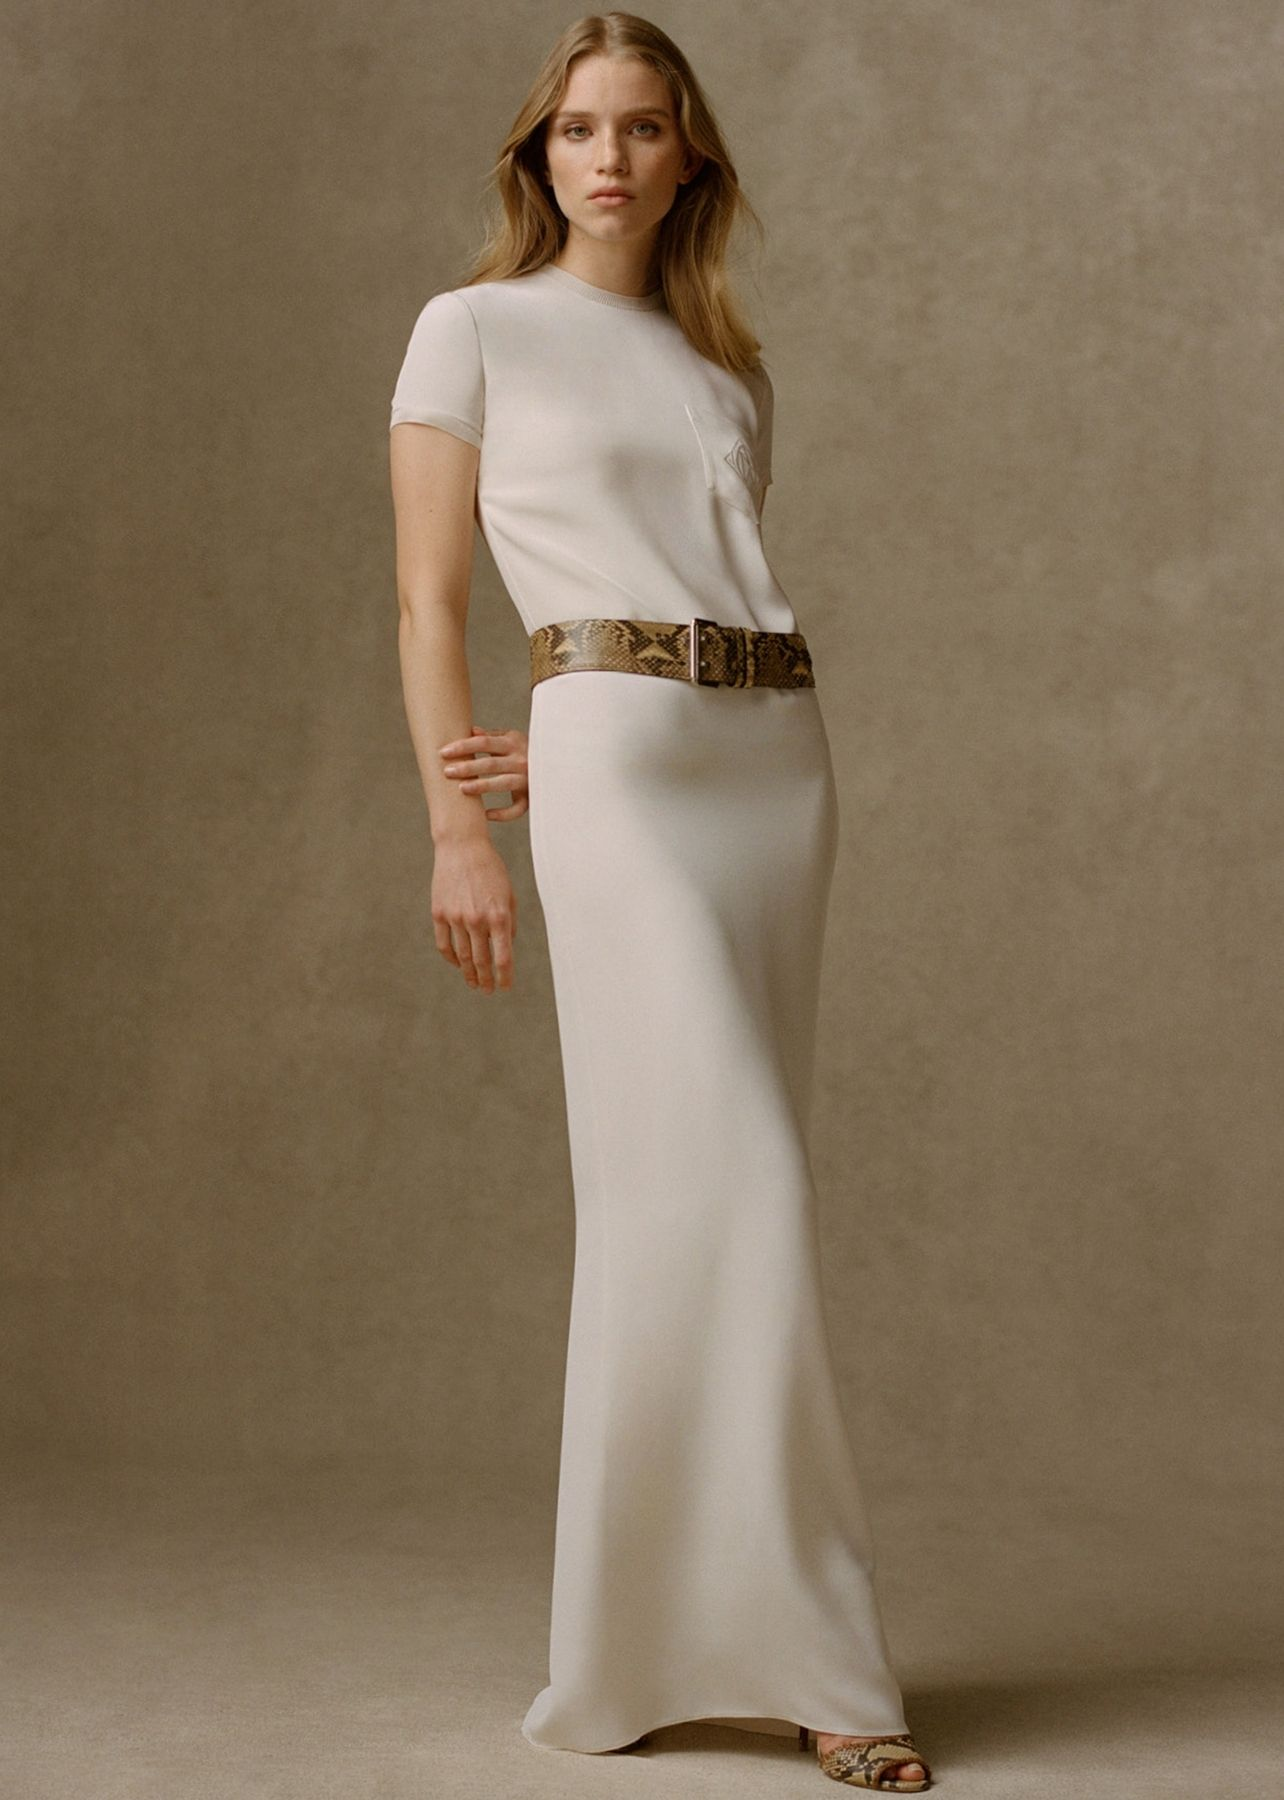 Woman photographed in an ivory floor length dress paired with a snakeskin waist belt and matching sandals